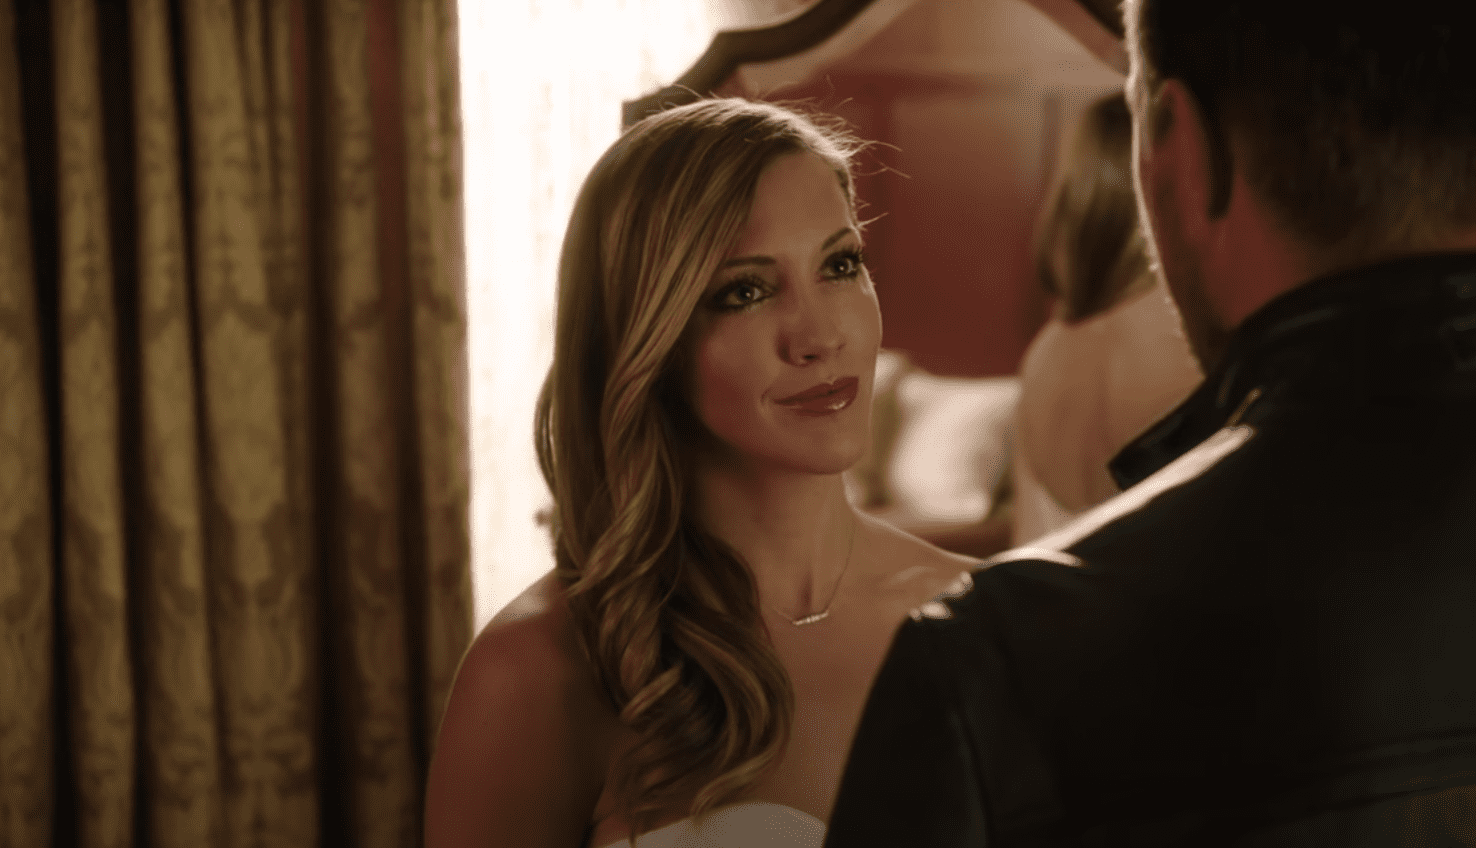 Image Source: Youtube/Katie Cassidy Daily|Arrow/CW